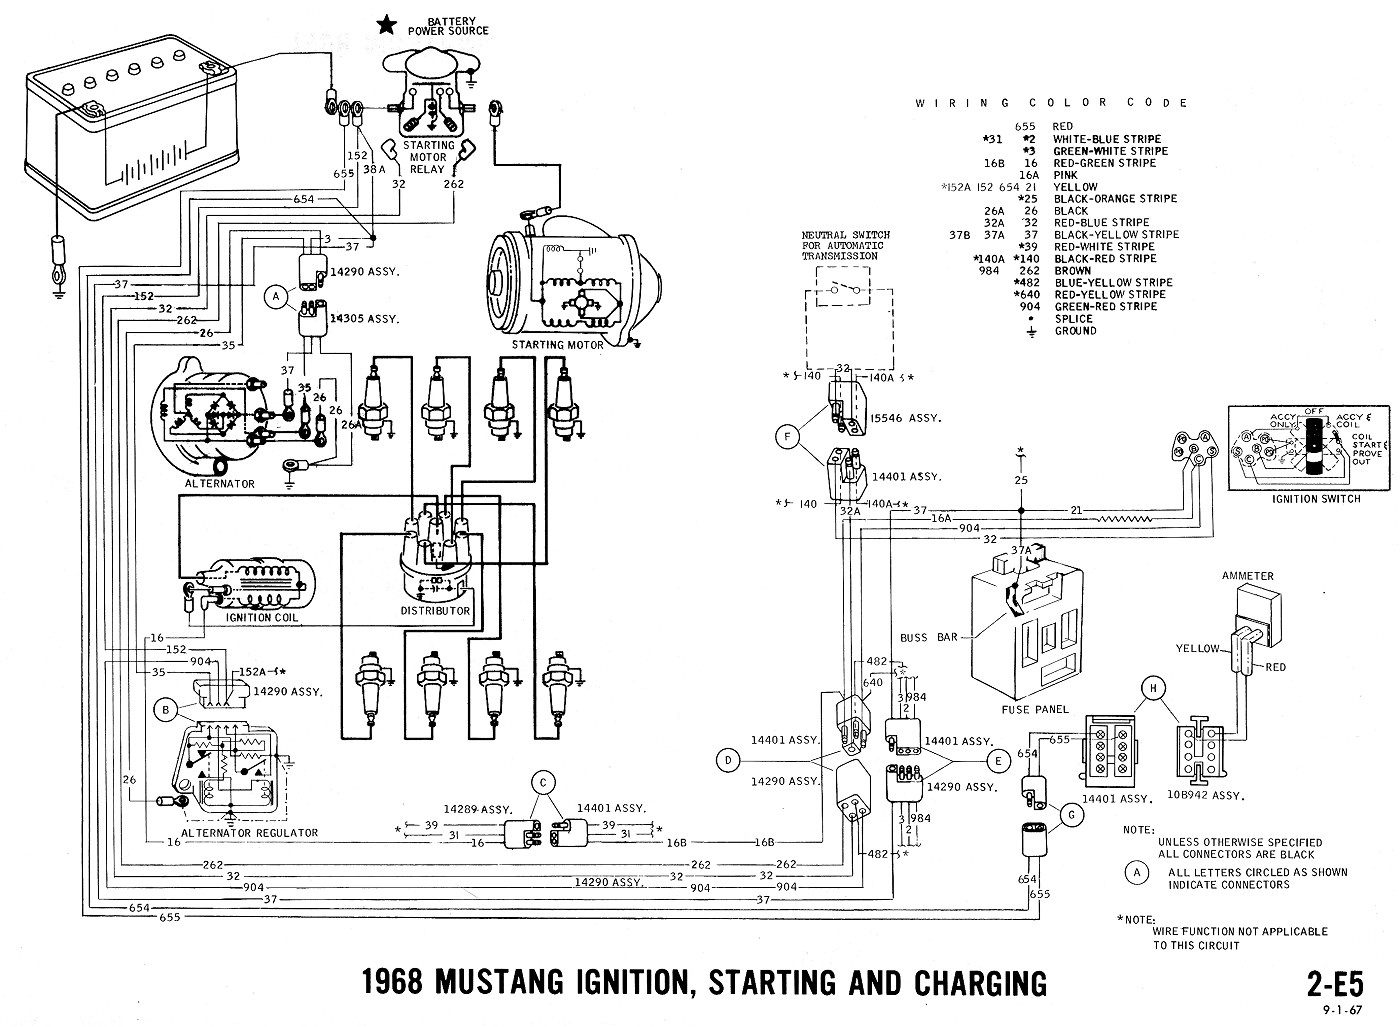 1987 mustang 5 0 charging system schematic auto electrical wiring rh 6weeks  co uk 1980 Mustang